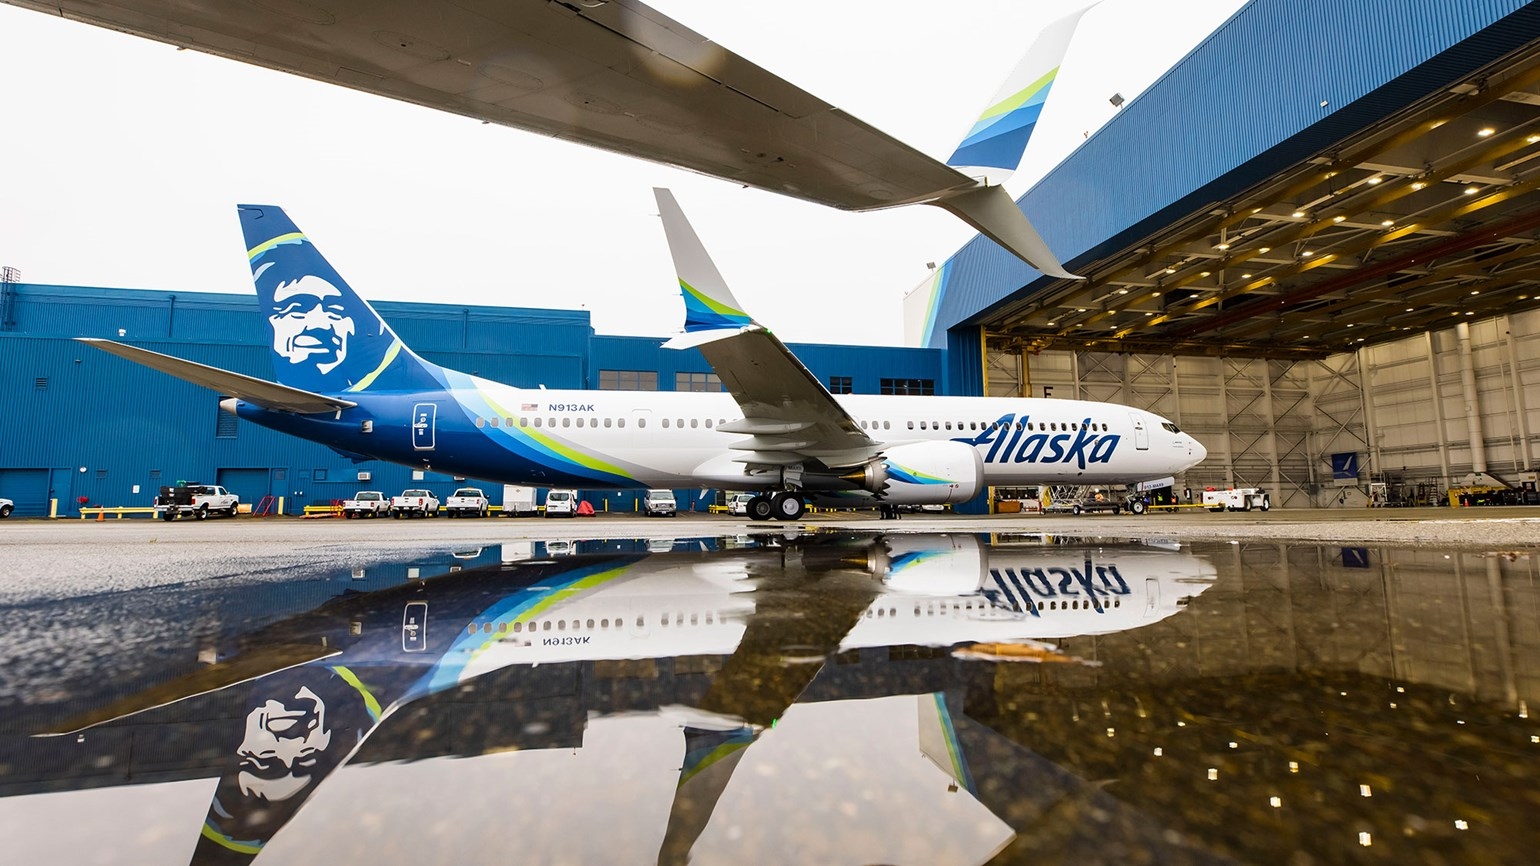 Alaska Airlines completes its first 737 Max flight